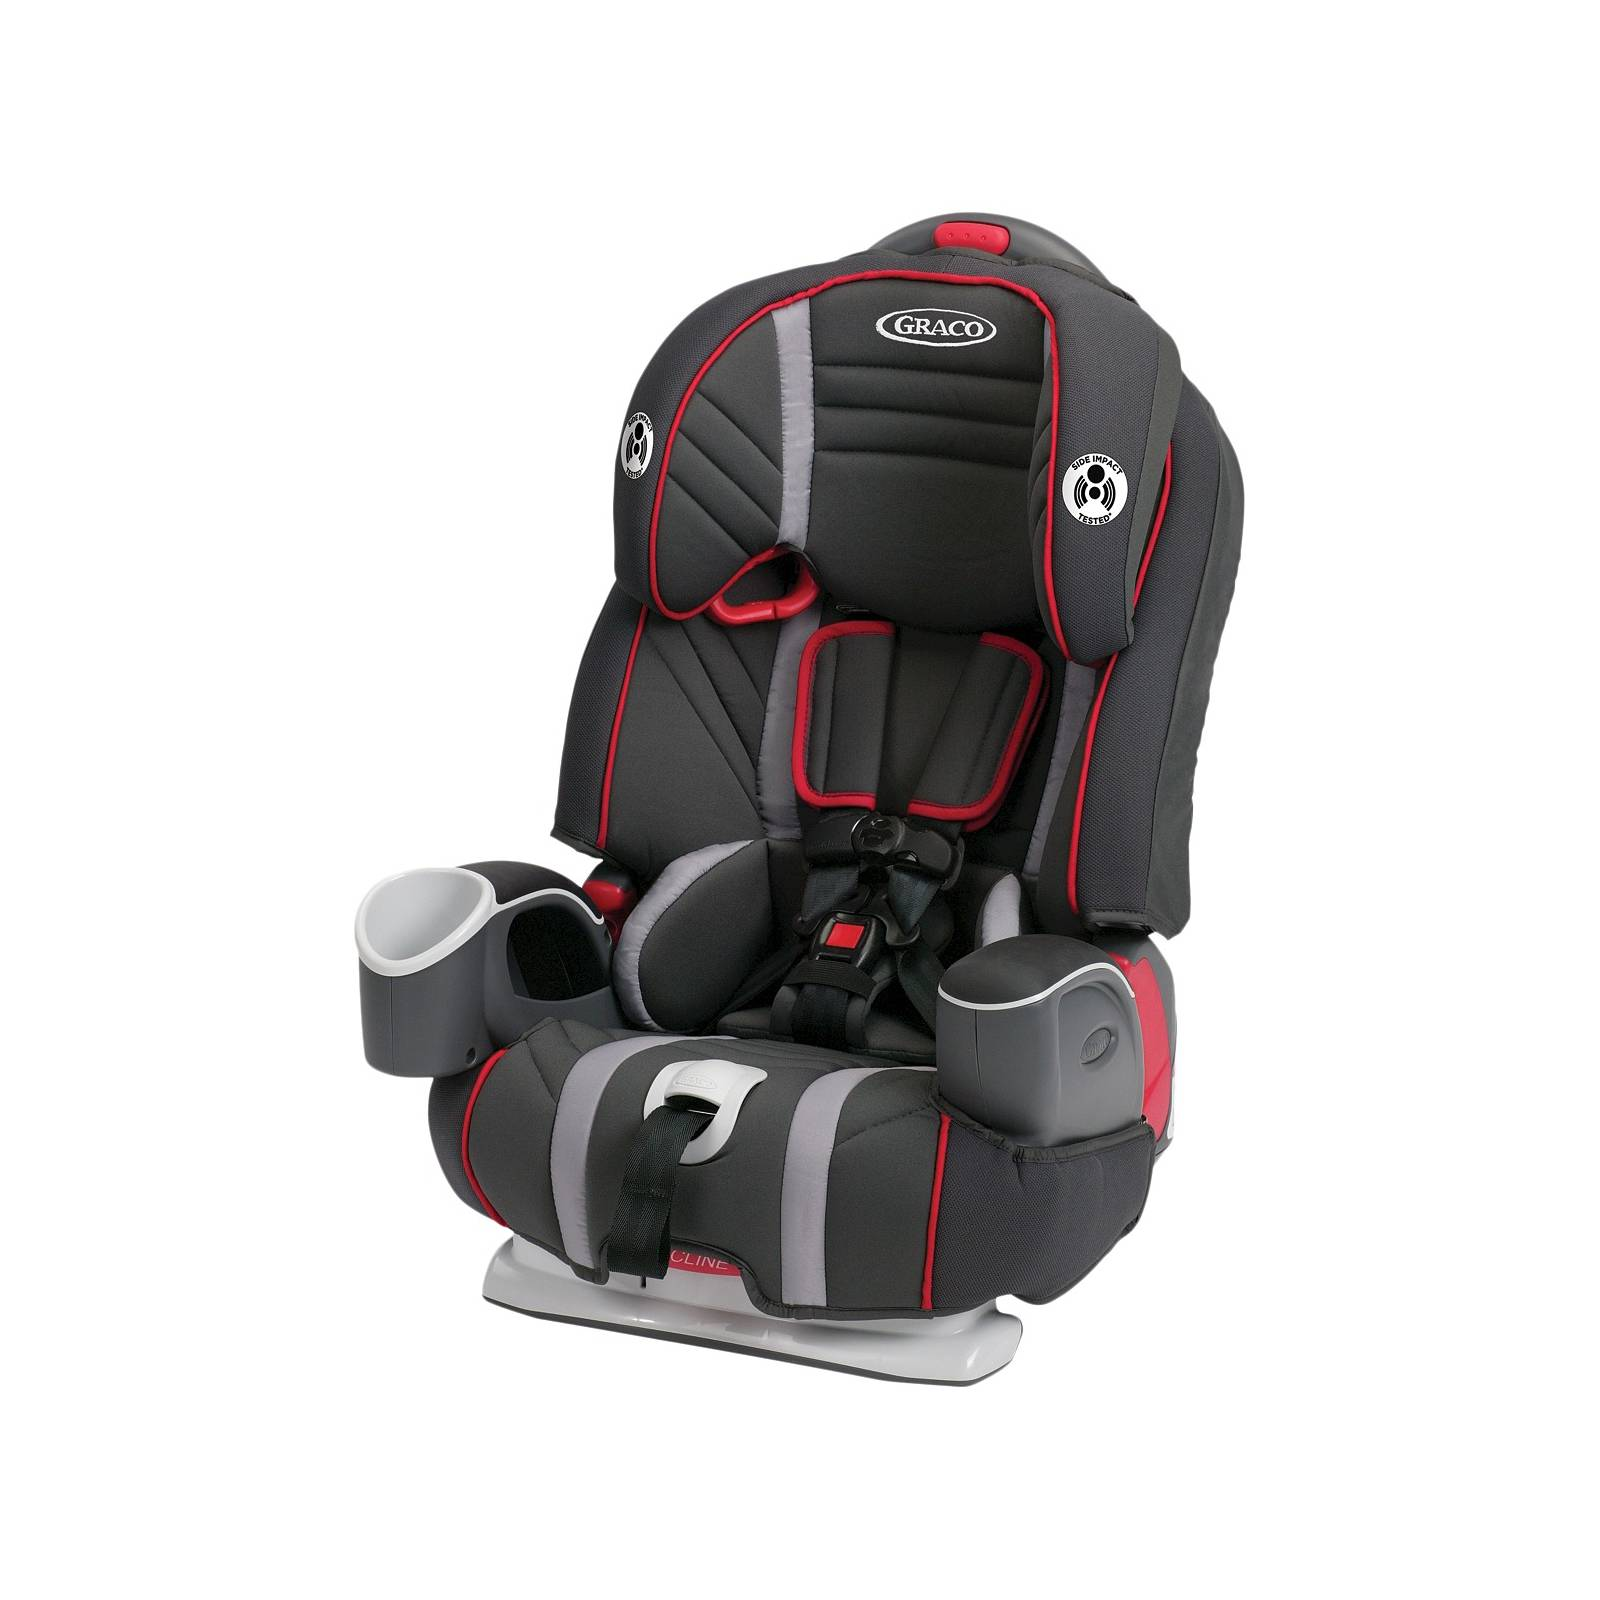 Graco nautilus 3 in 1 multi use car seat - Our Top Pick